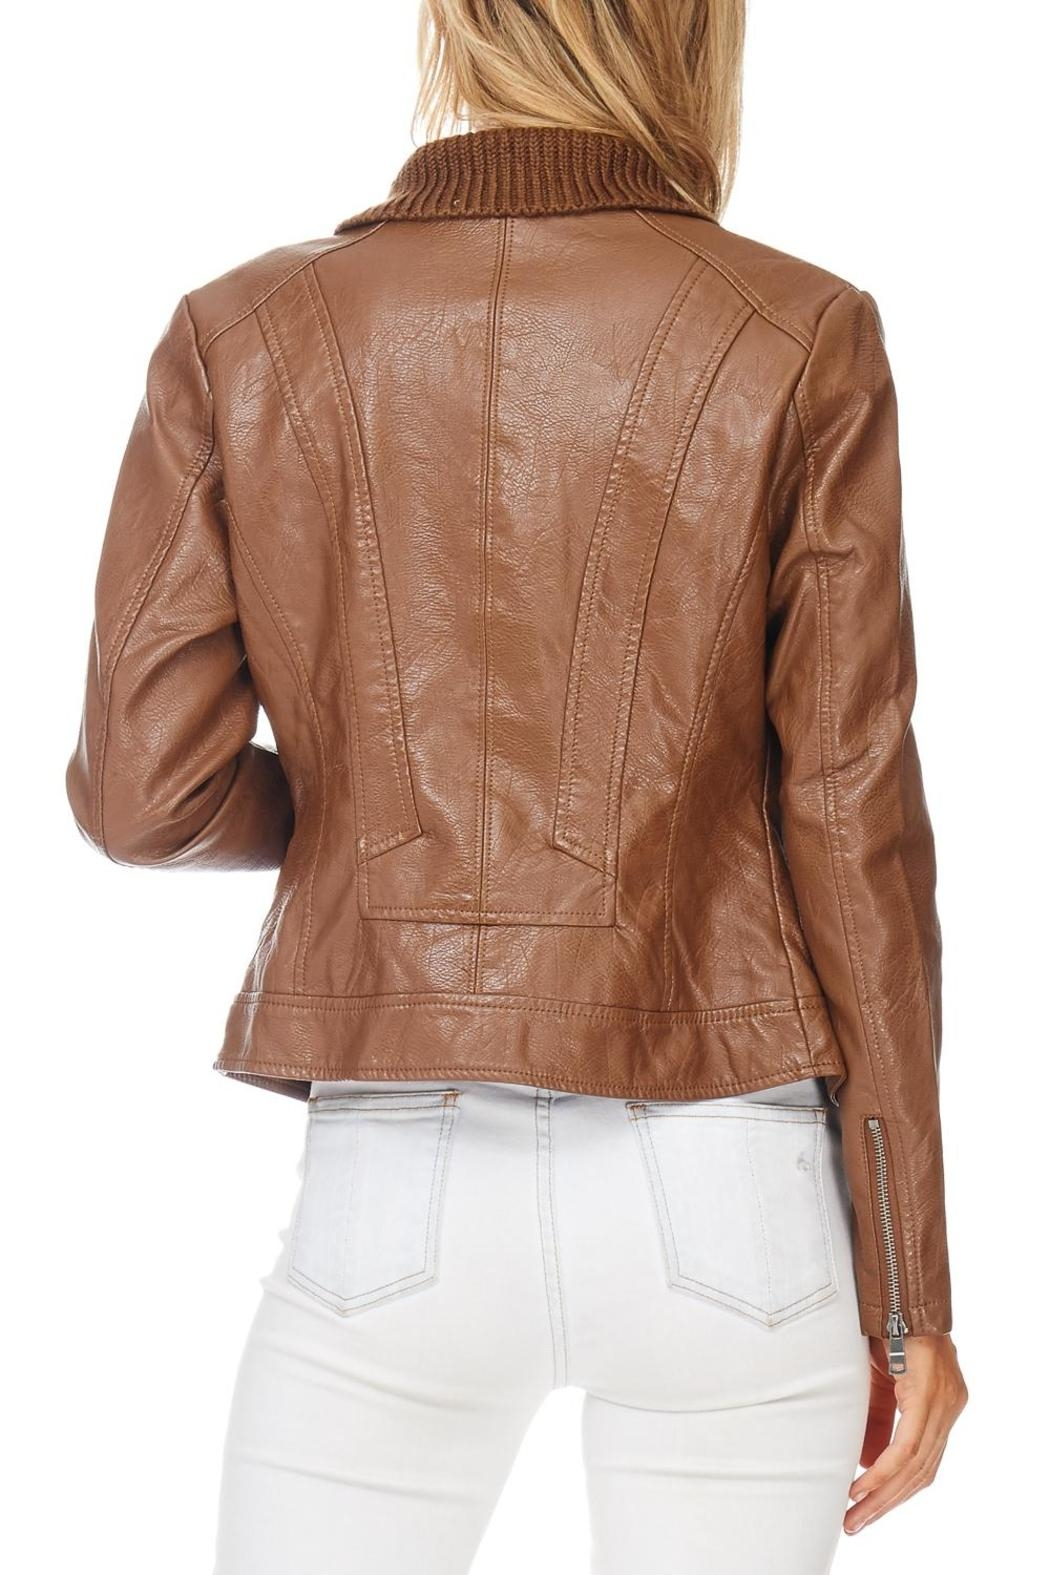 Coalition Moto Vegan Leather Jacket - Side Cropped Image